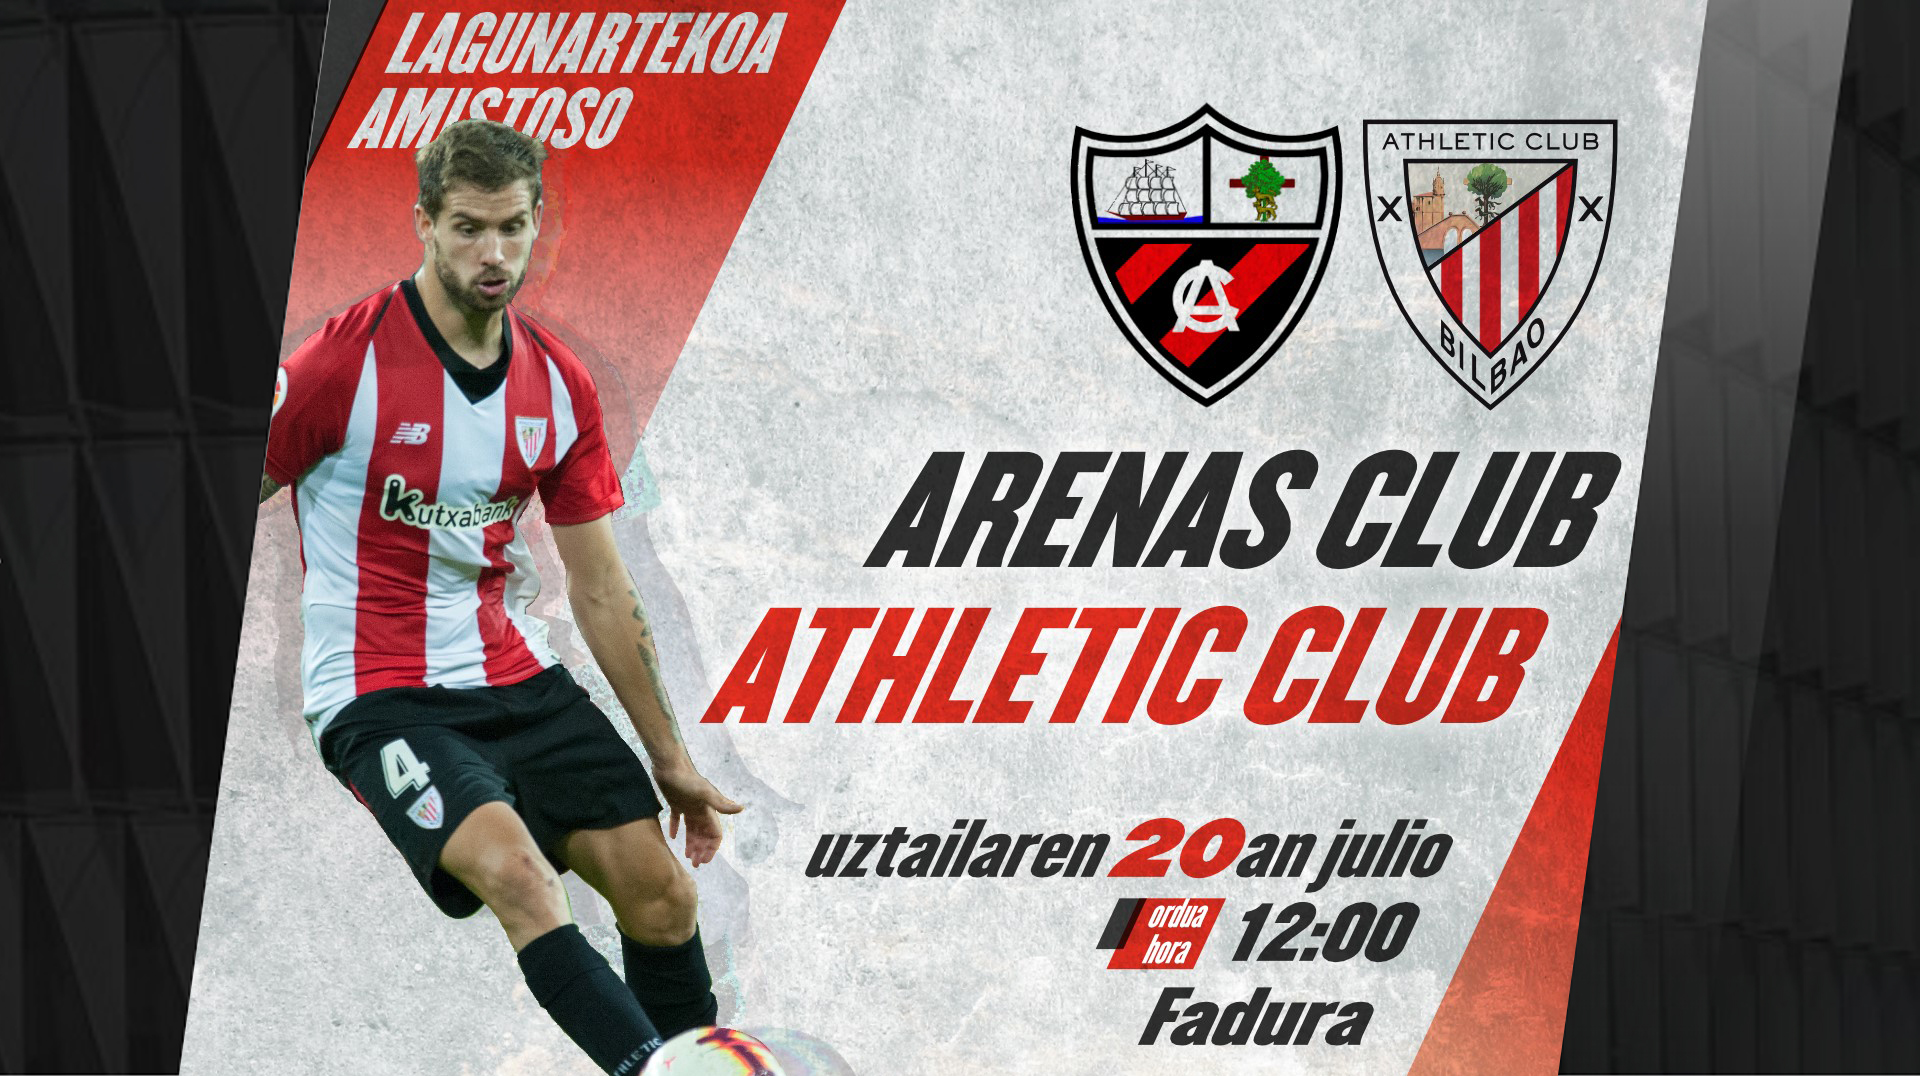 2ec3050e22f Athletic will open the friendly matches against Arenas in Fadura · Watch  video